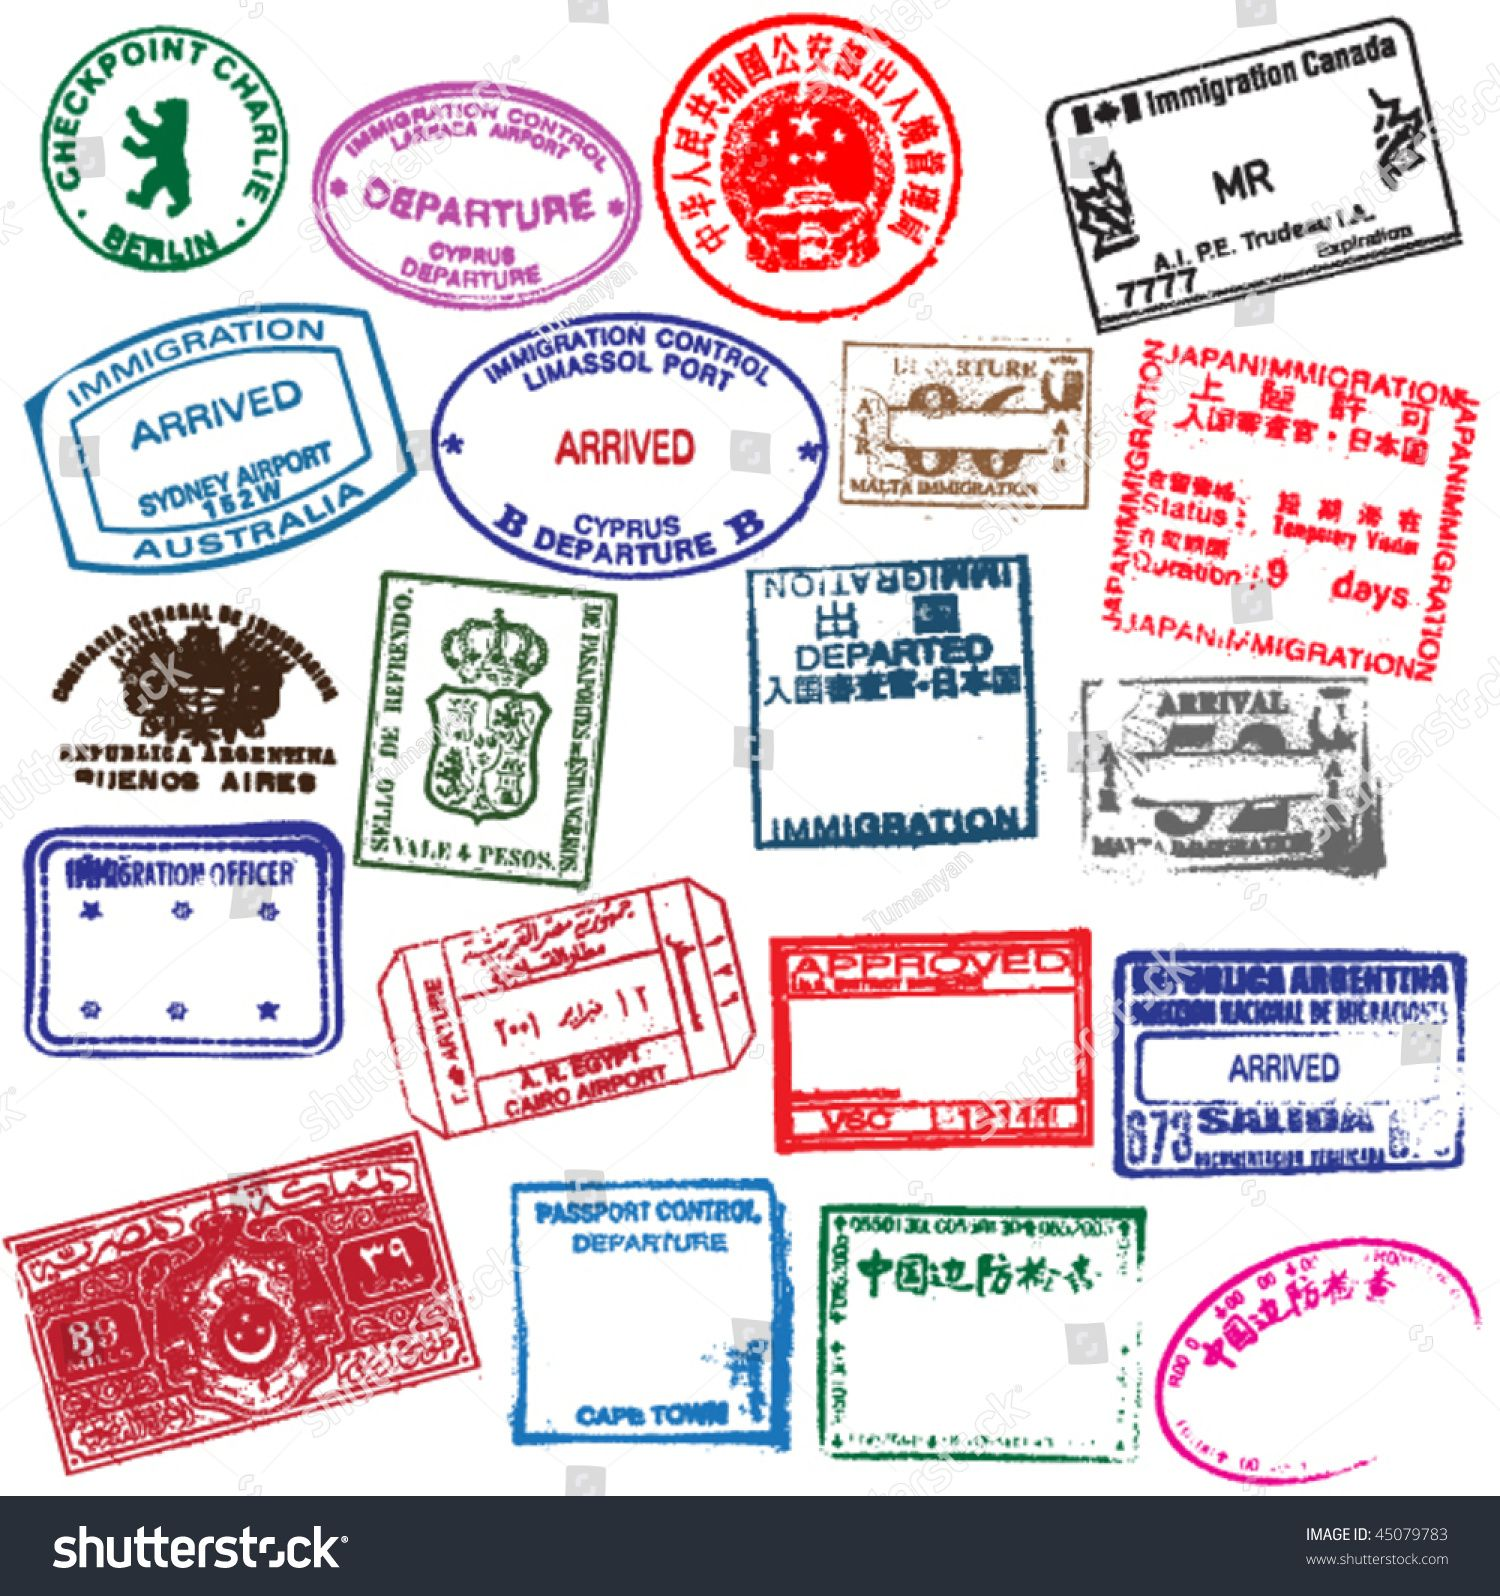 various visa stamps from passports from worldwide